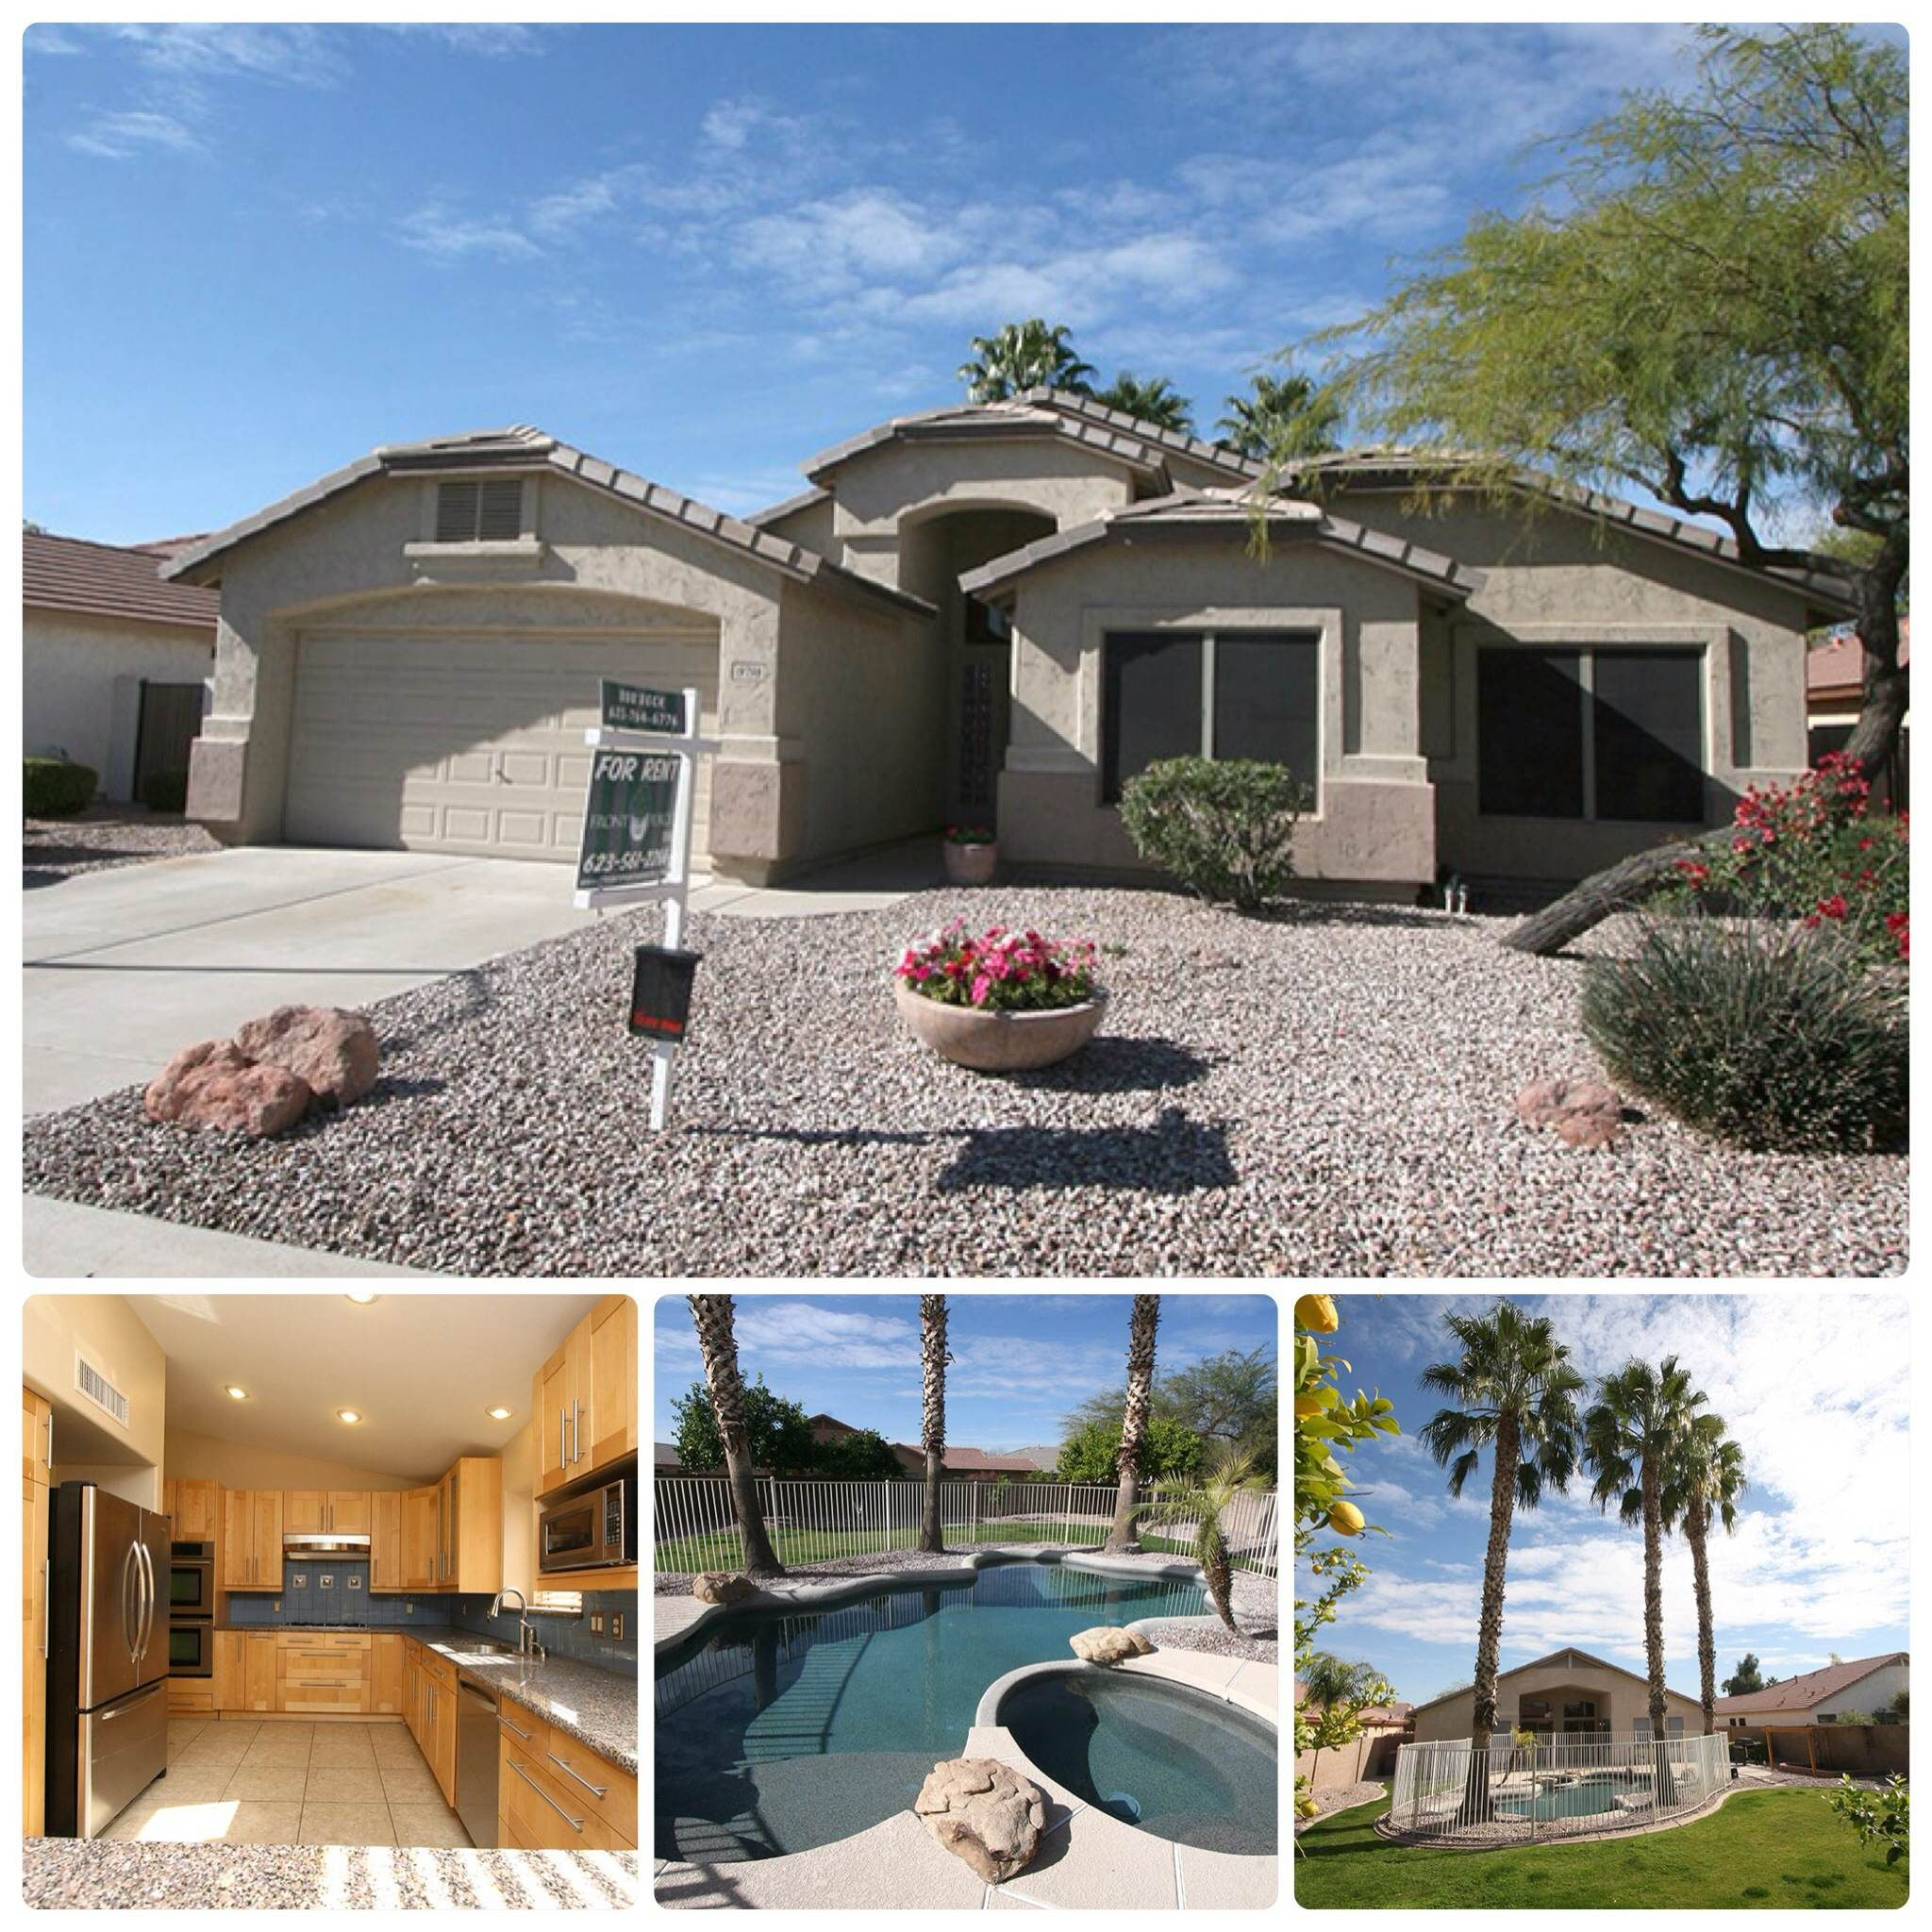 Check Out This Beautiful New Rental Home Of Ours This Is A 4bed 2bath Home Located In The Highlands Of Arrowhead Co House Rental Glendale Arizona House Styles